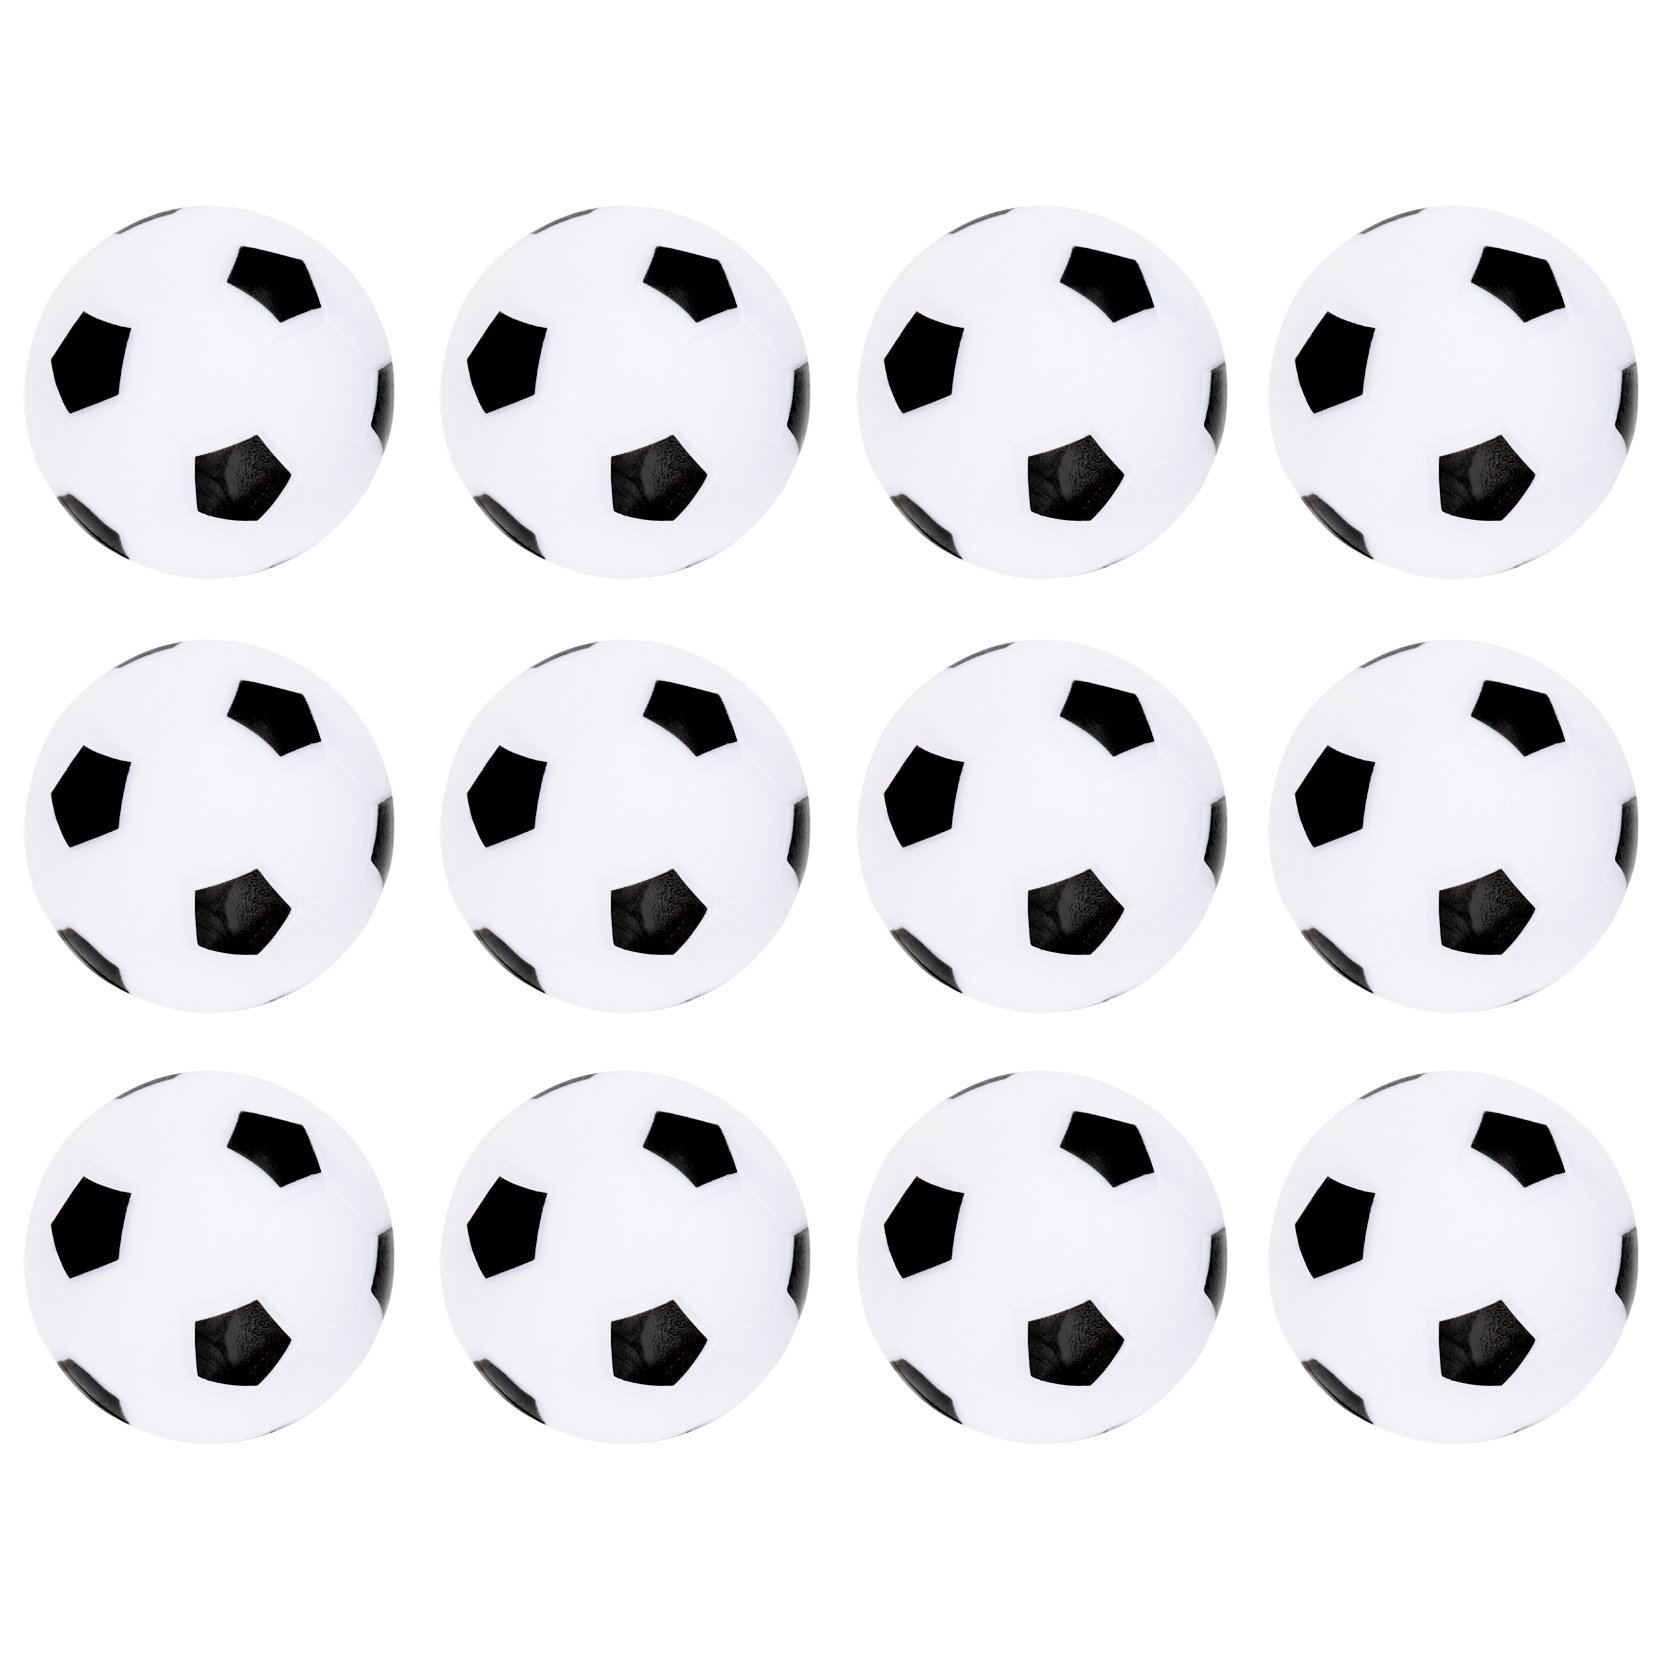 Truscope Sports Foosball Table Soccer Replacement Balls - 36mm - (12 Pack, Black-White)